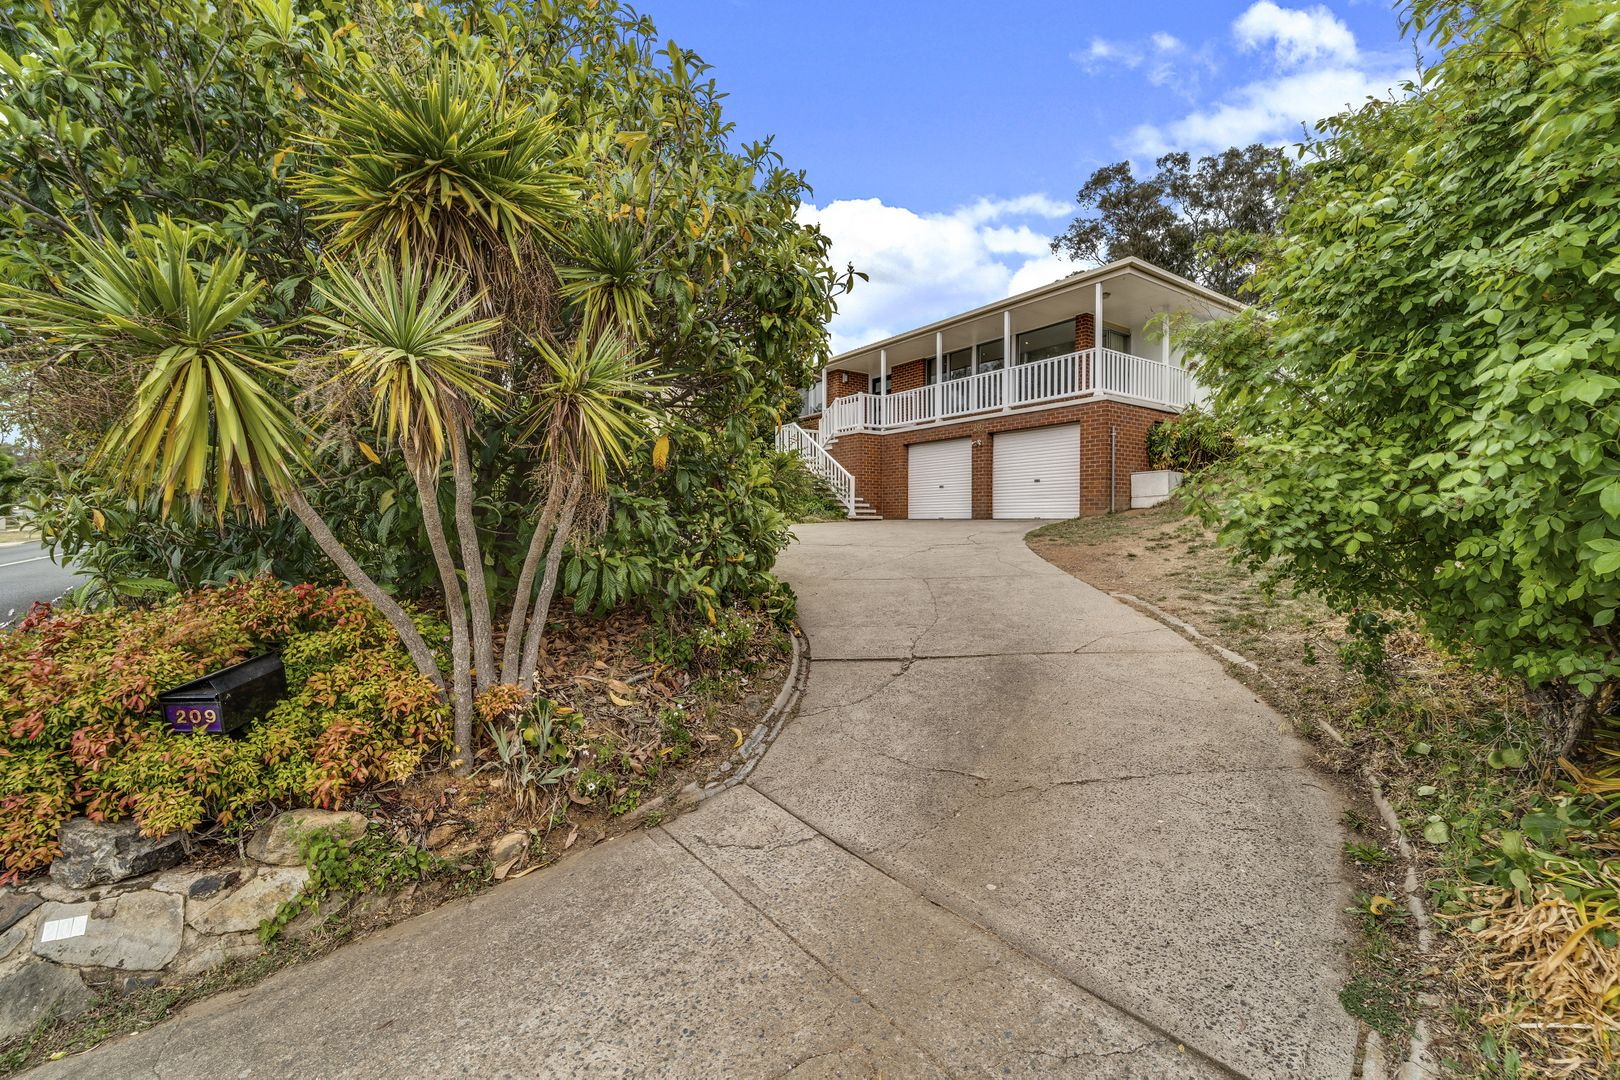 209 Copland Drive, Spence ACT 2615, Image 0